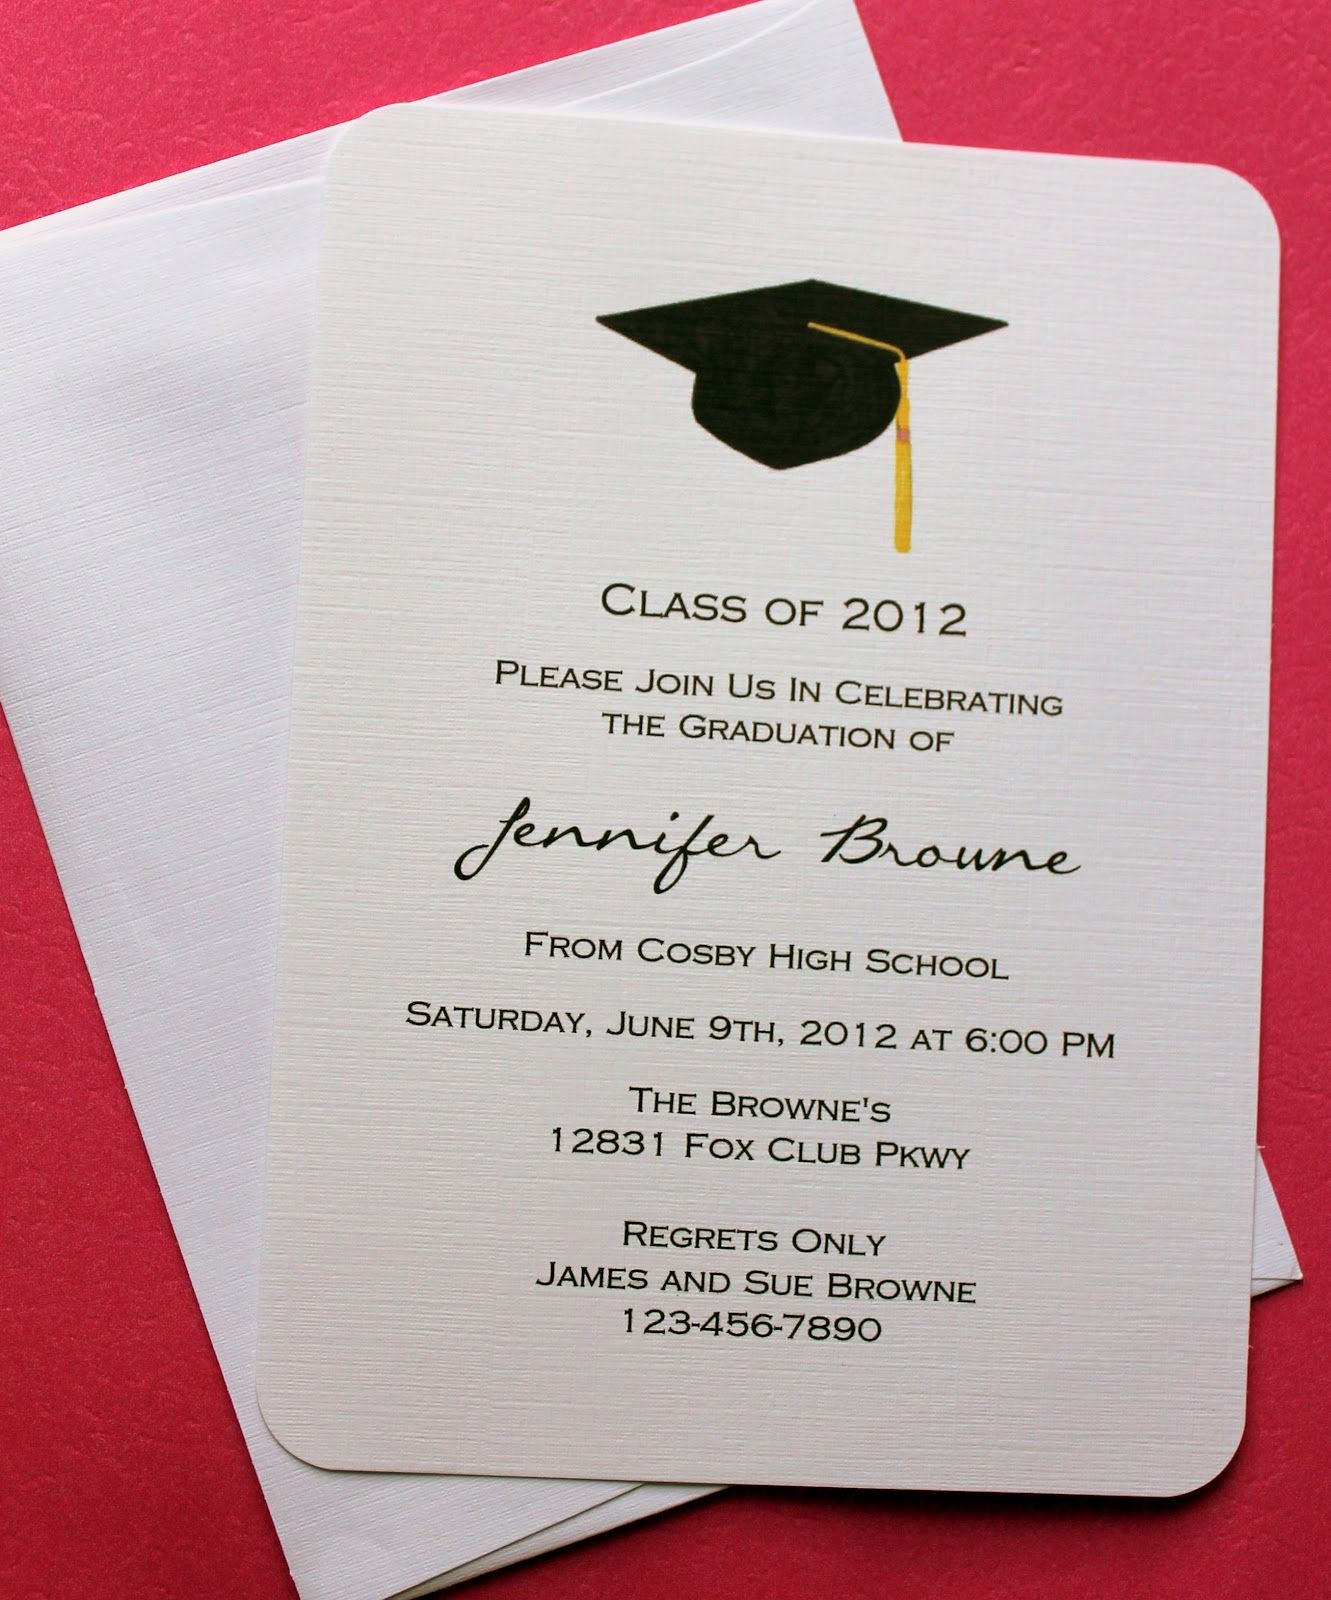 Collection of thousands of free graduation invitation template collection of thousands of free graduation invitation template from all over the world yadclub Gallery